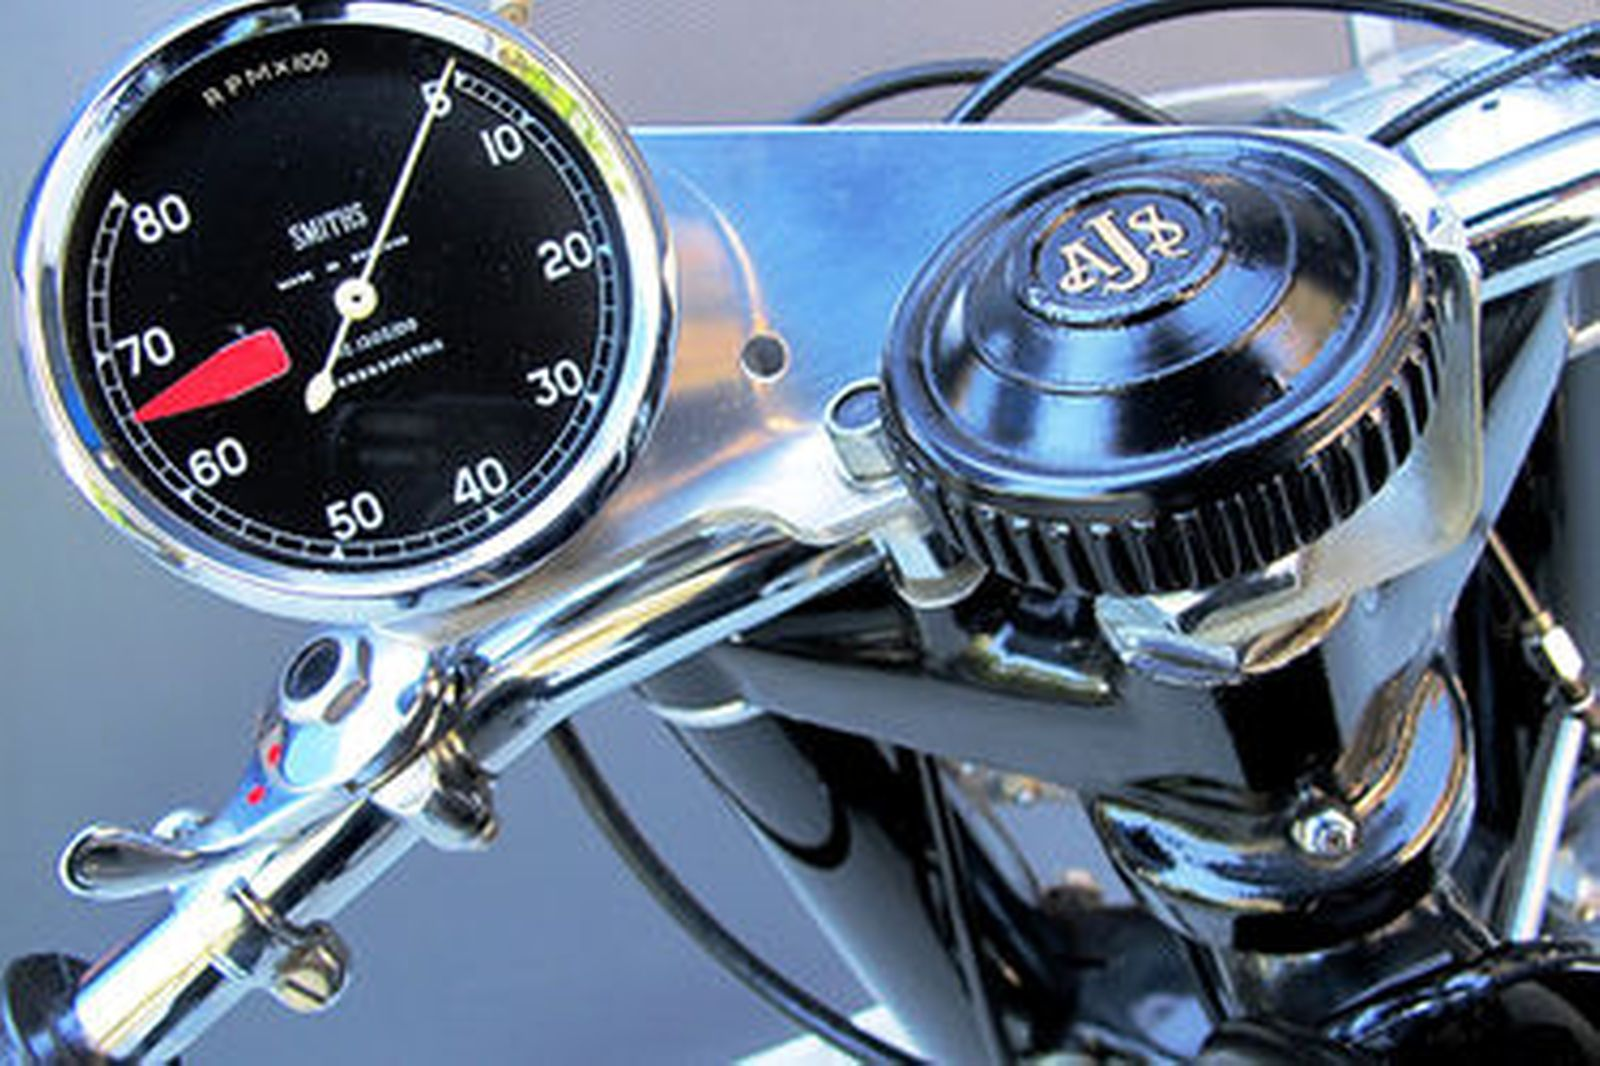 AJS 7R 350cc Racing Motorcycle